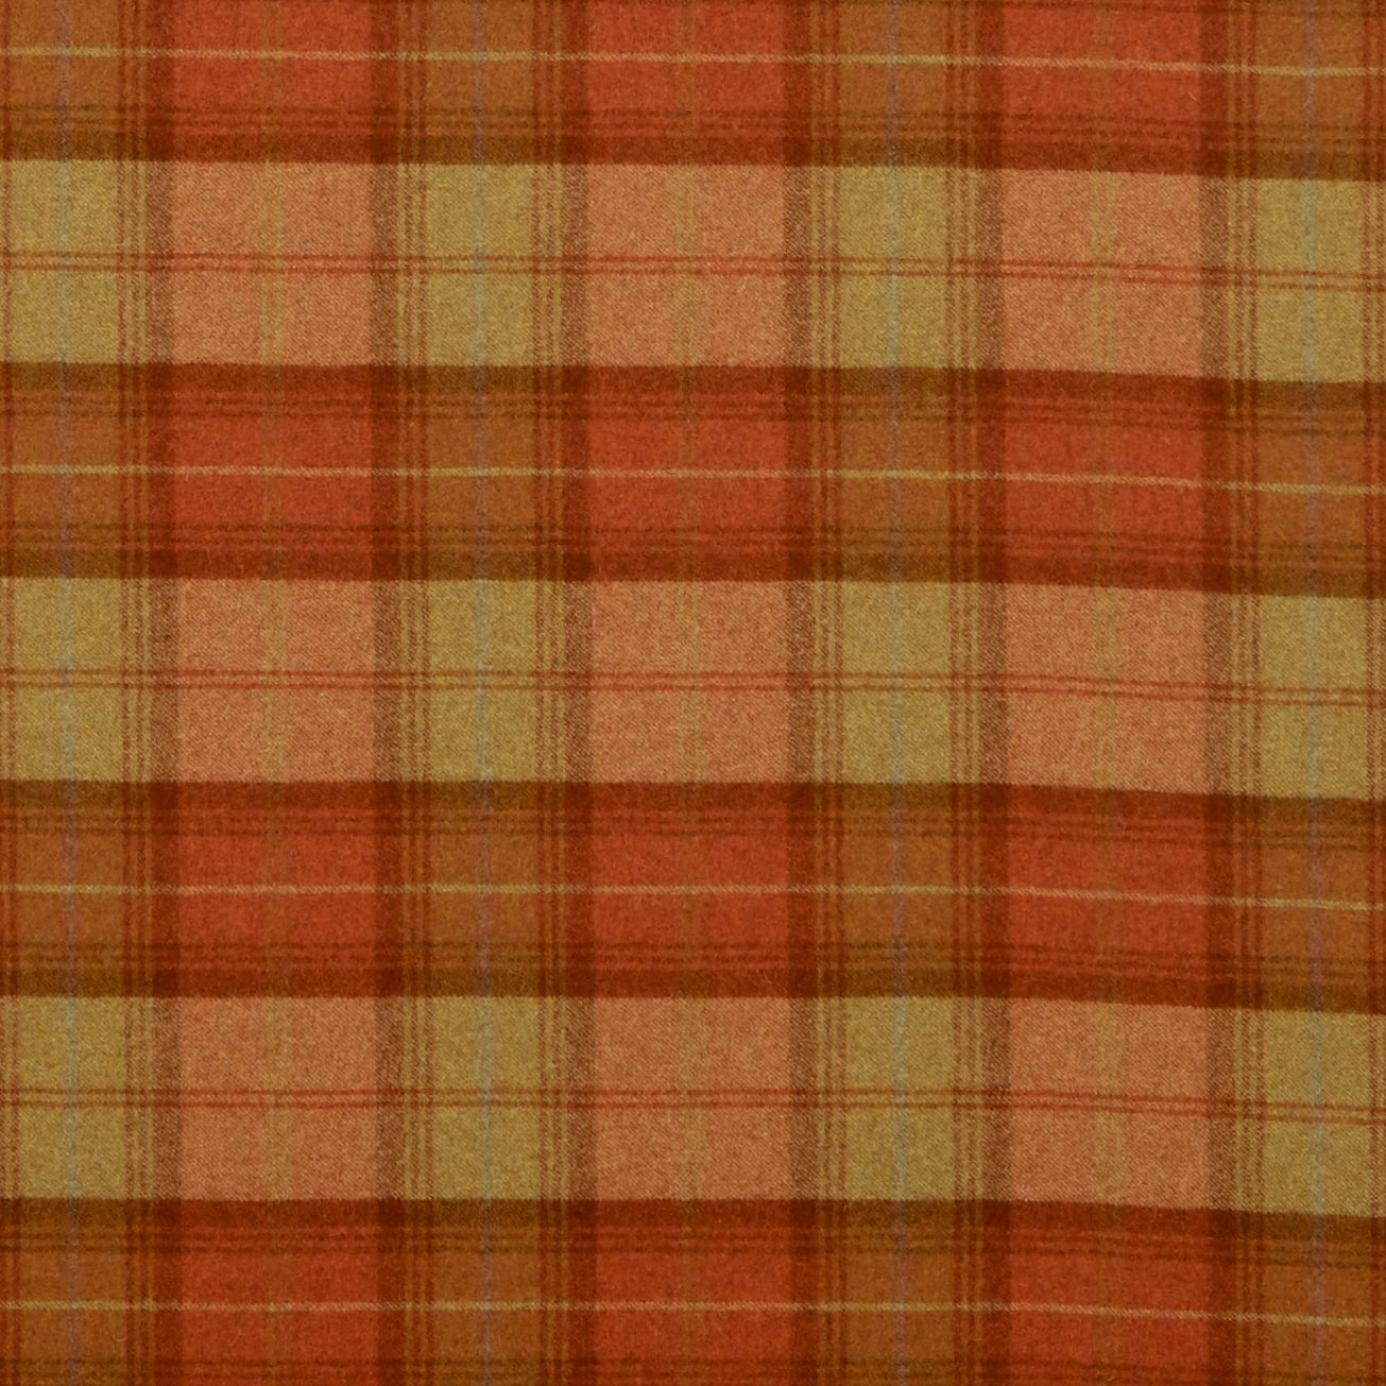 Roman Blinds In Woodford Plaid Fabric Burntorange Dhigwp308 Regarding Plaid Roman Blinds (Image 8 of 15)